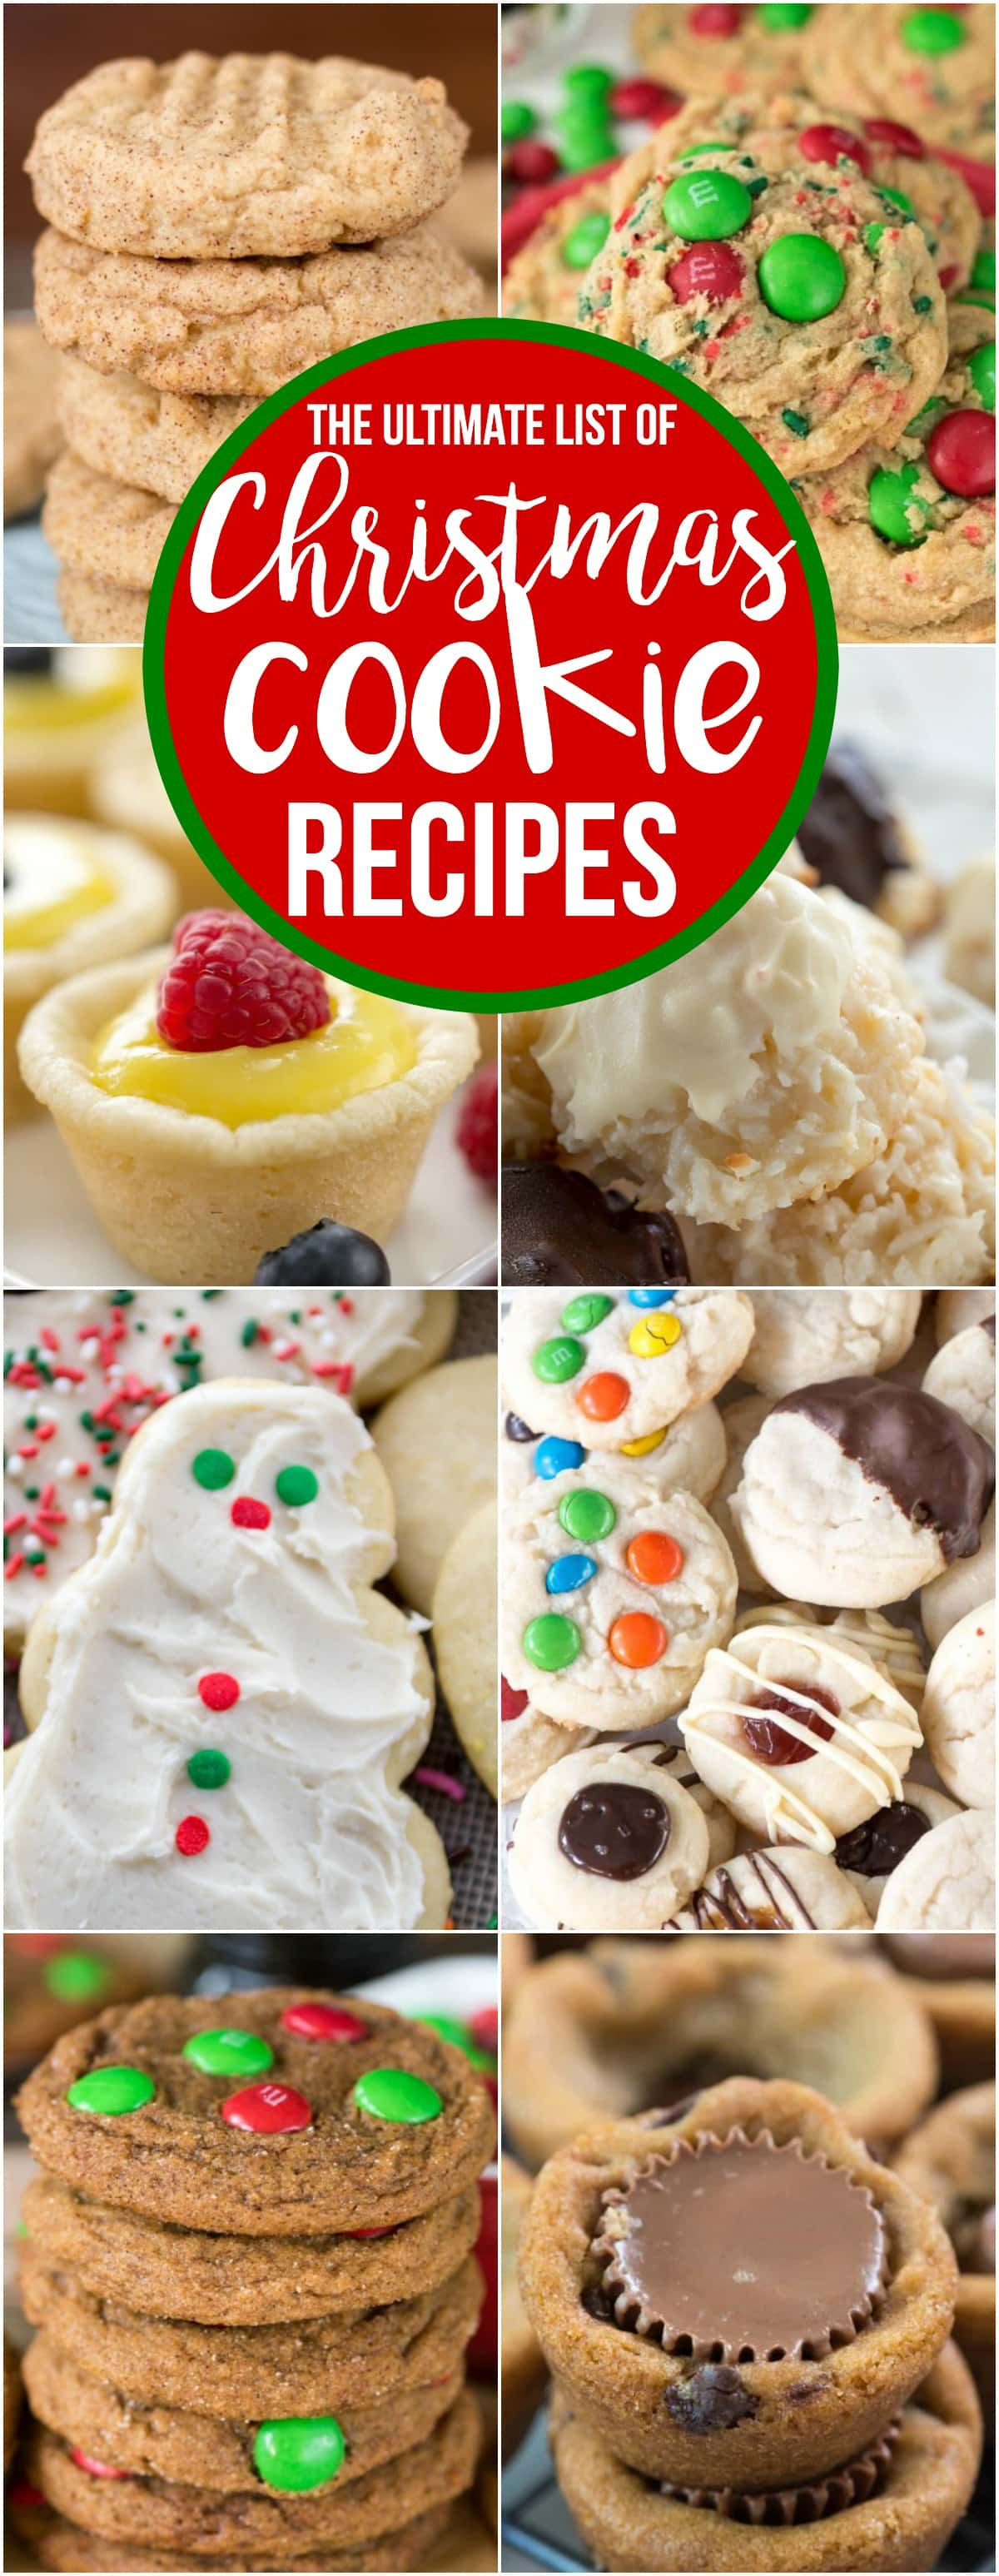 Christmas Cookies List  The Ultimate List of Christmas Cookies Crazy for Crust